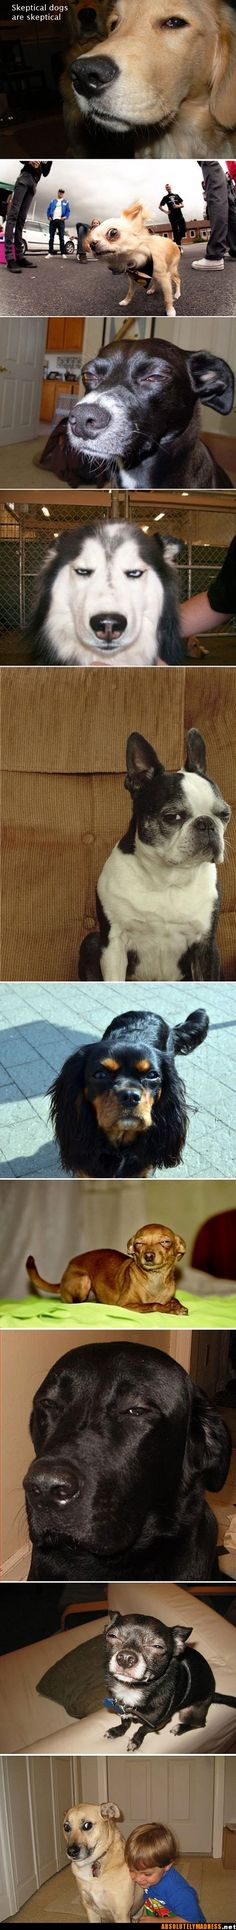 skeptical dogs. Hilarious.